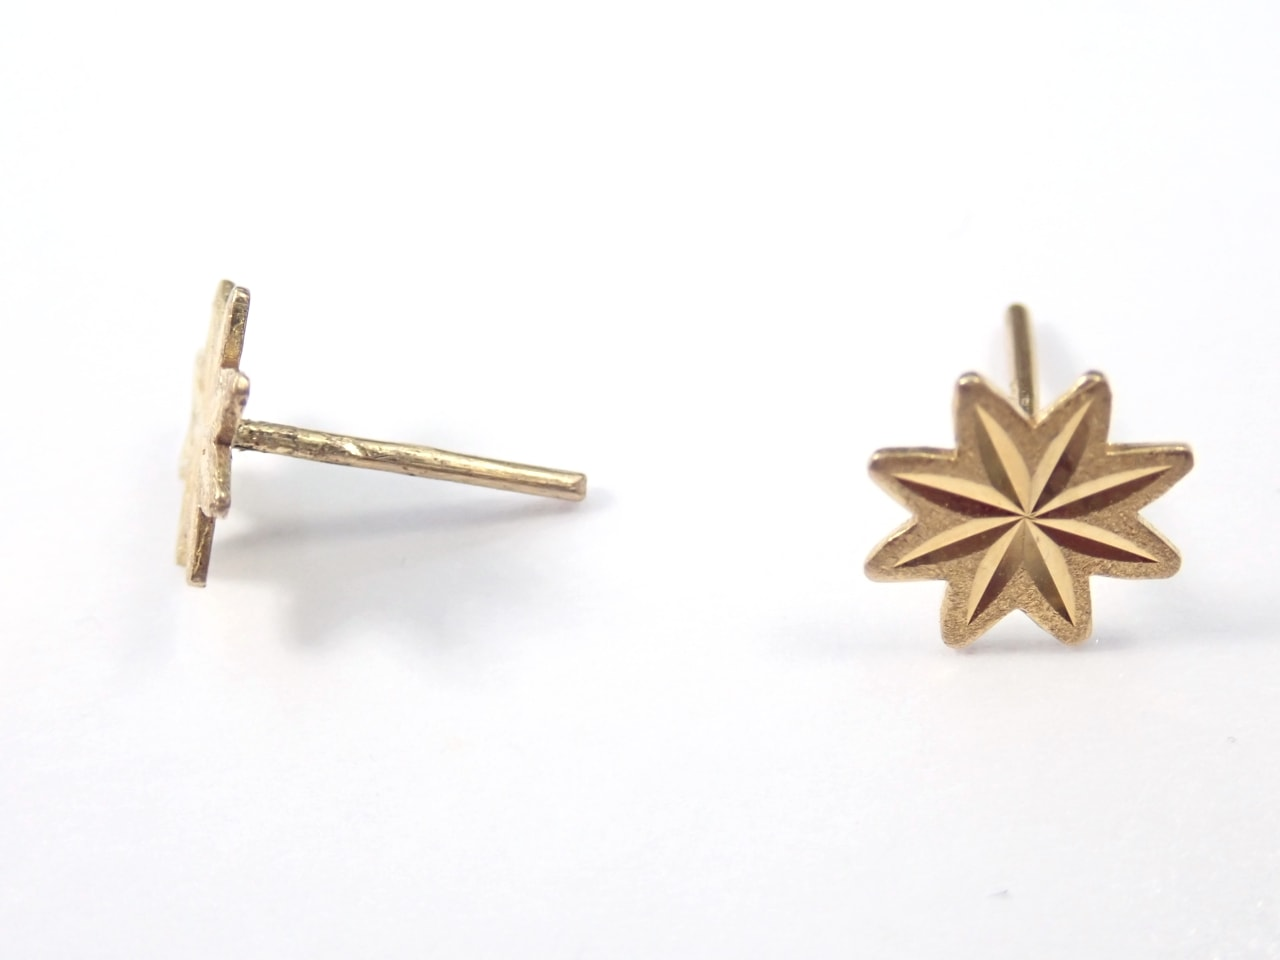 9ct Gold Star Earrings & Butterfly's Solid 375 0.70 grams